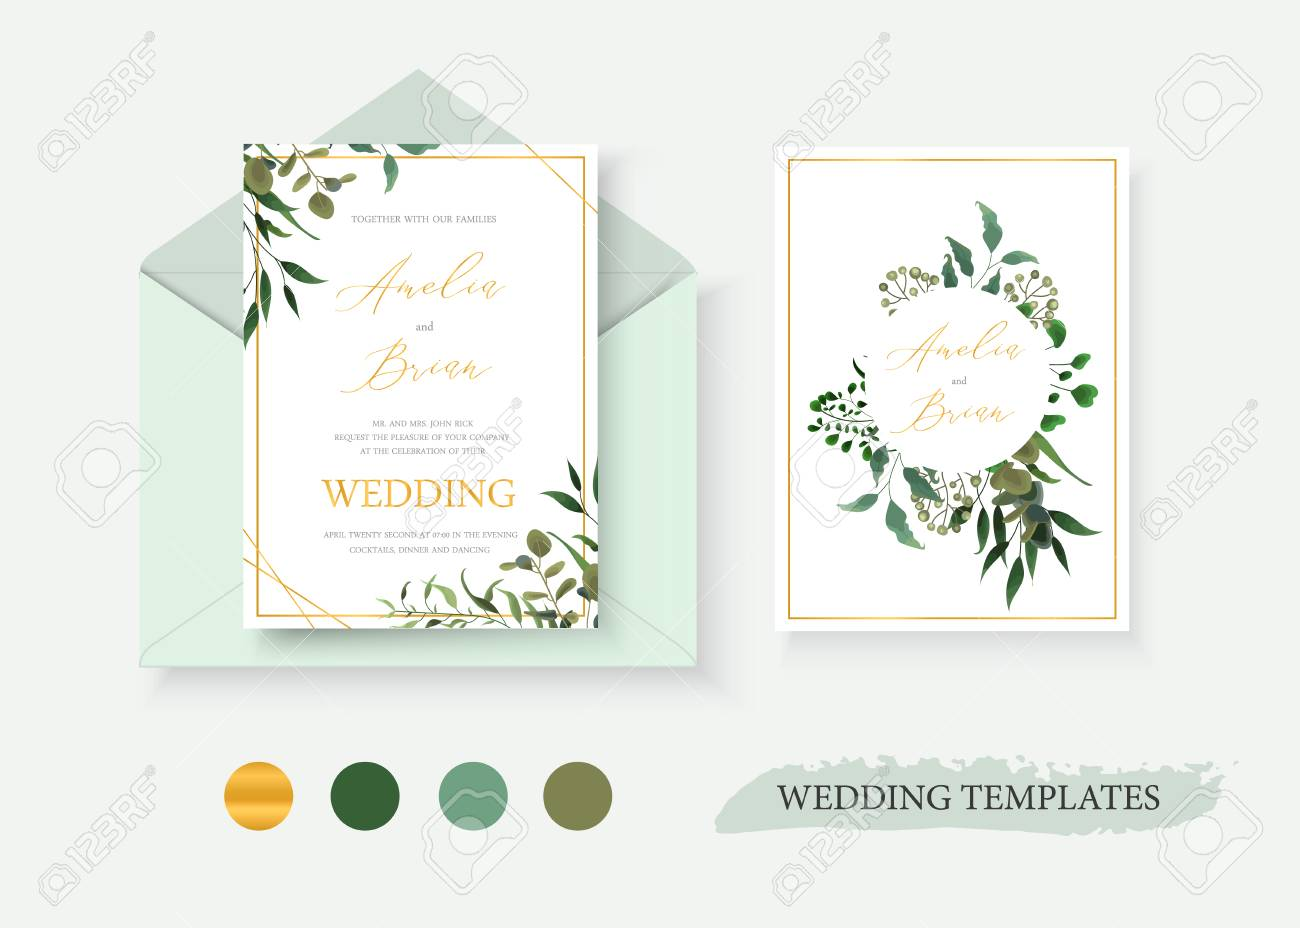 Wedding floral gold invitation card envelope save the date design with green tropical leaf herbs eucalyptus wreath and frame. Botanical elegant decorative vector template watercolor style - 110008631